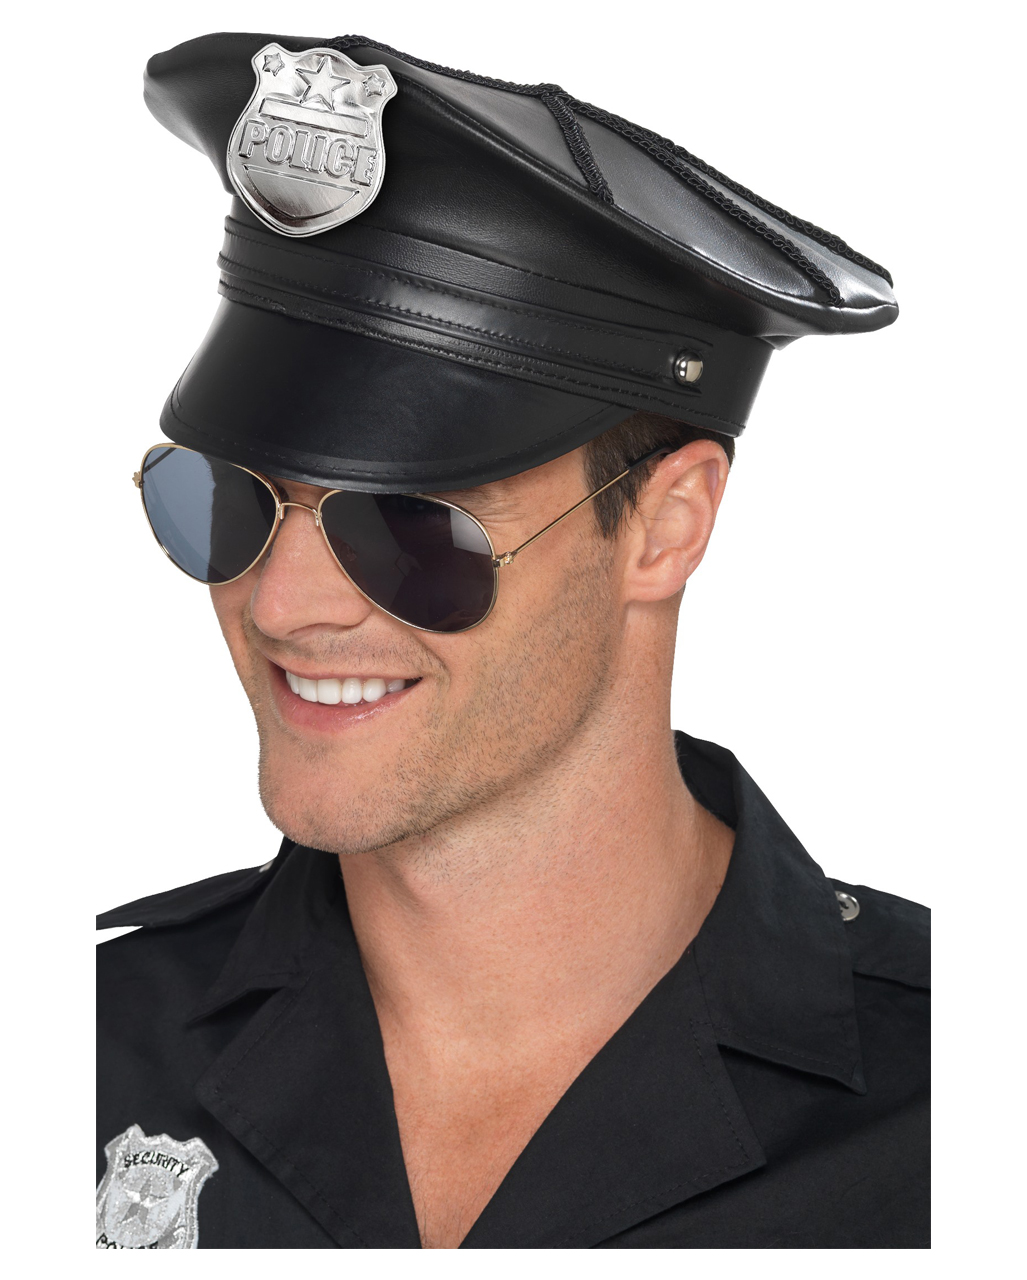 us police officer police hat as an accessory